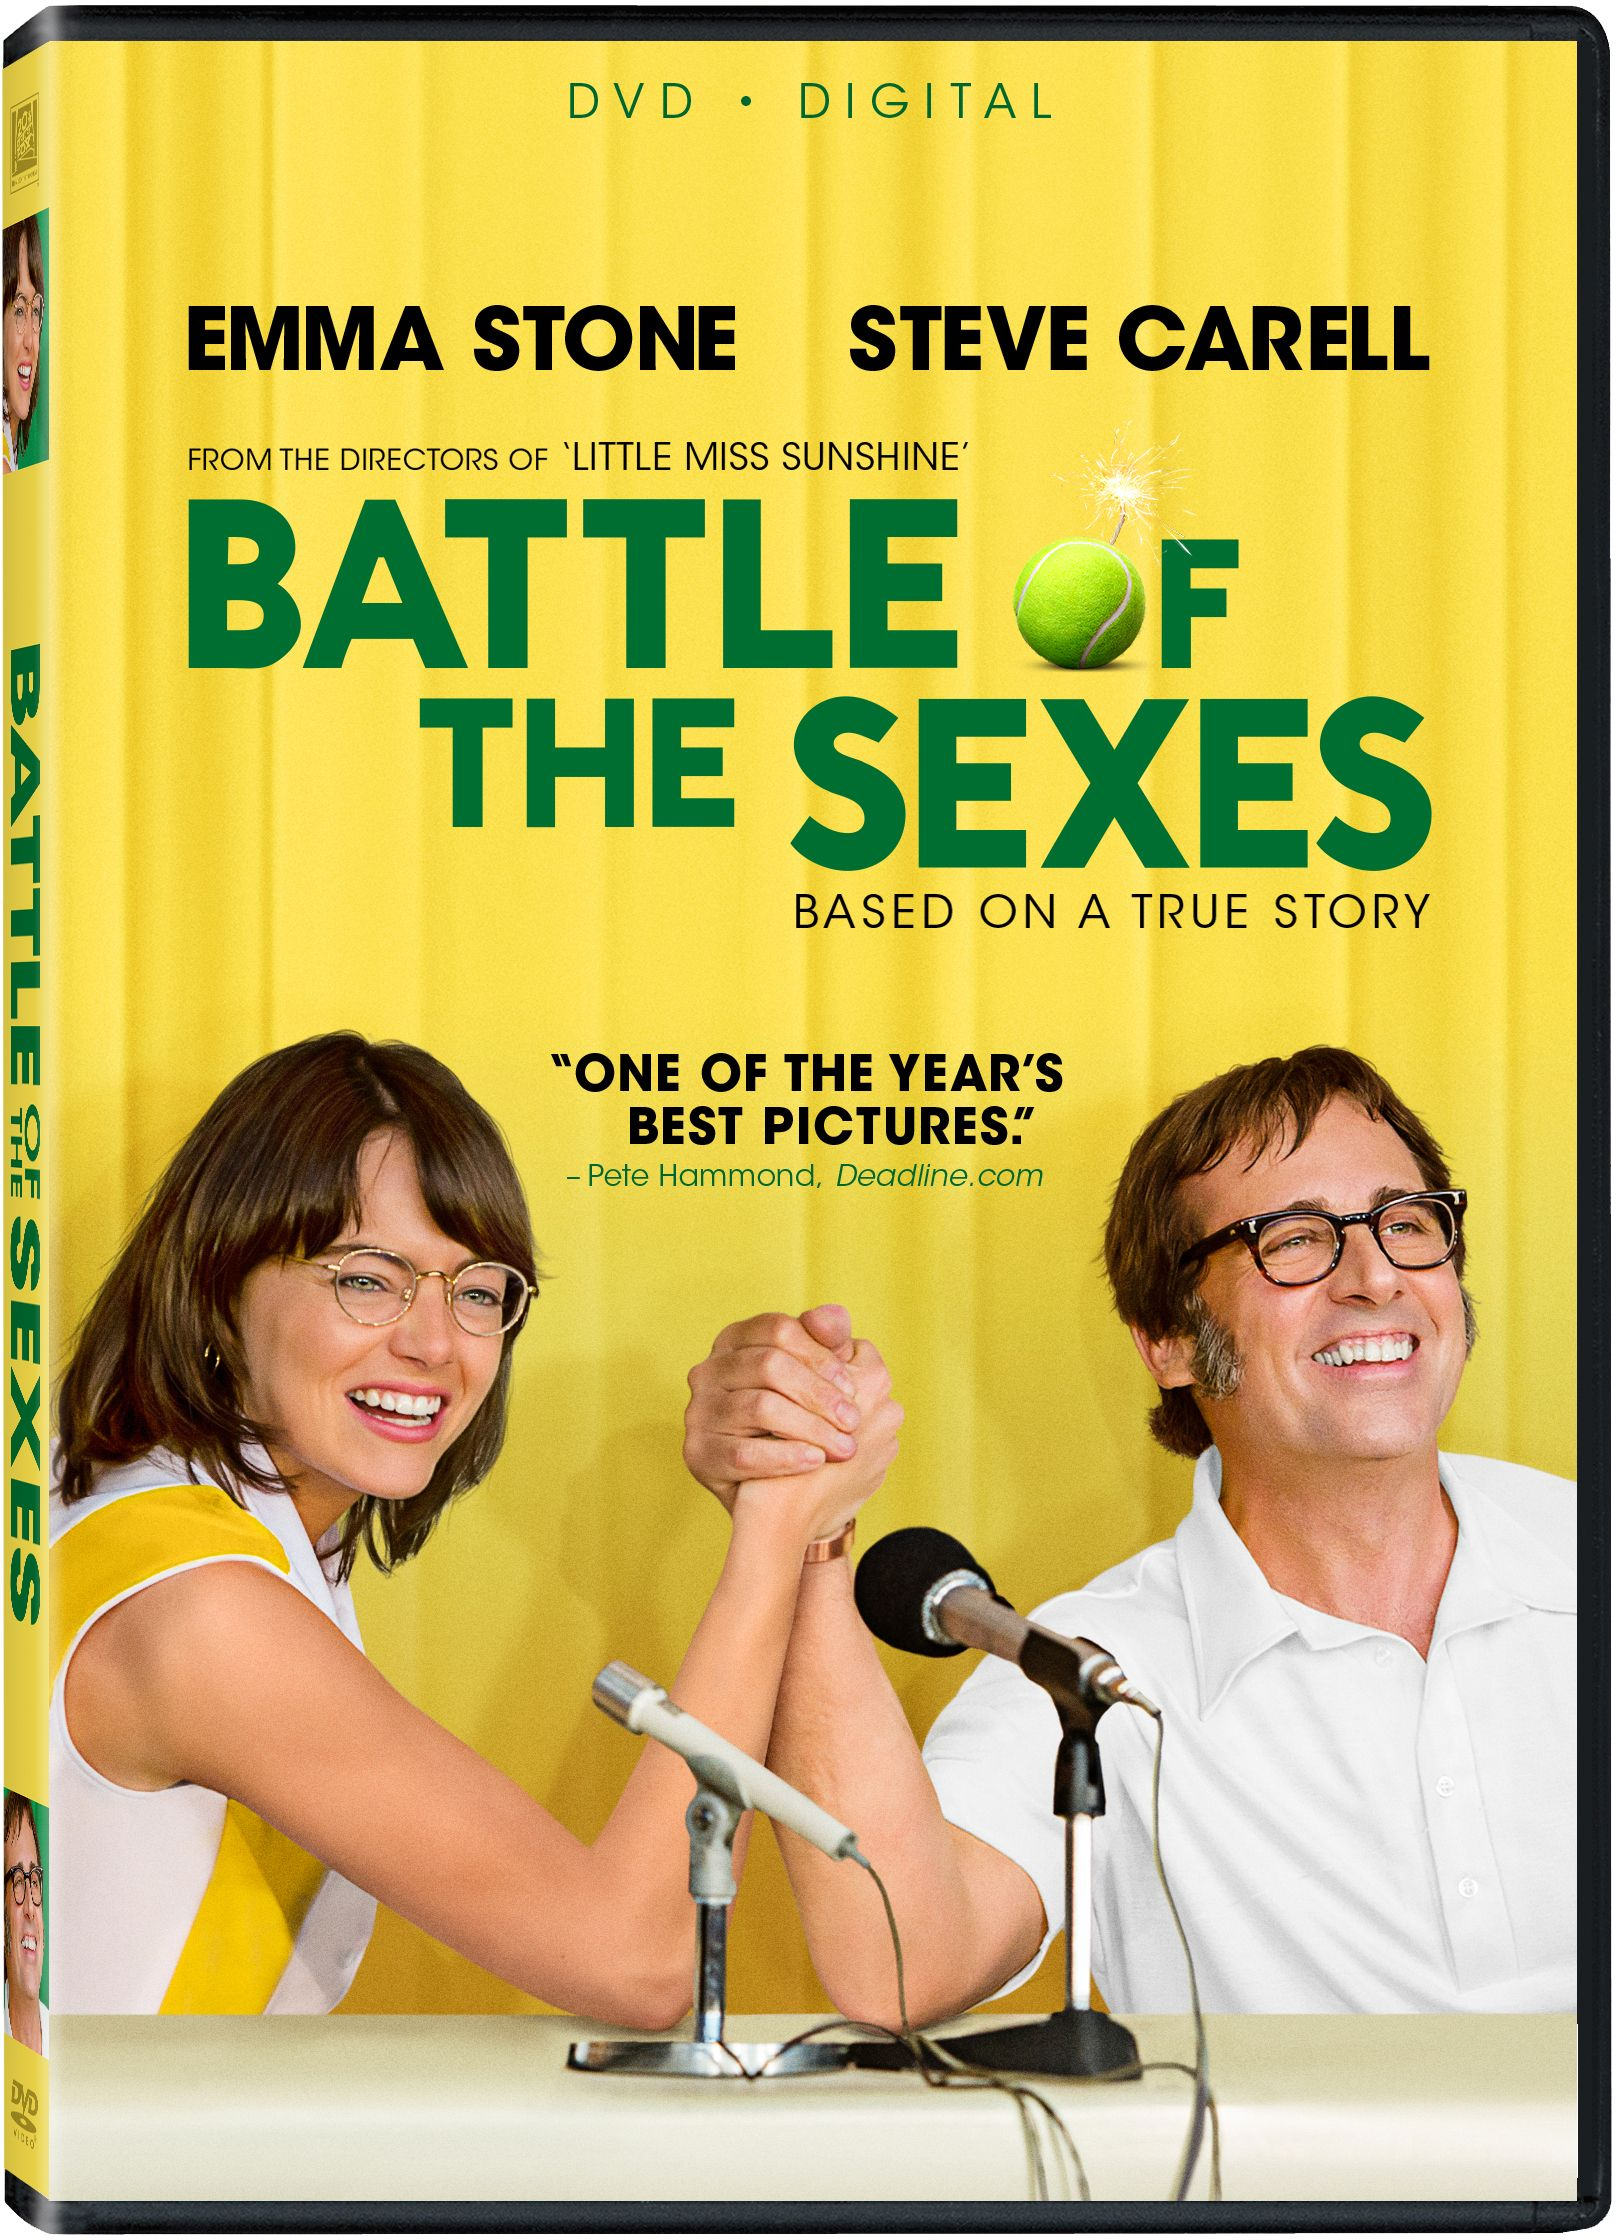 Battle Of The Sexes Dvd Digital Sexes Battle Digital The